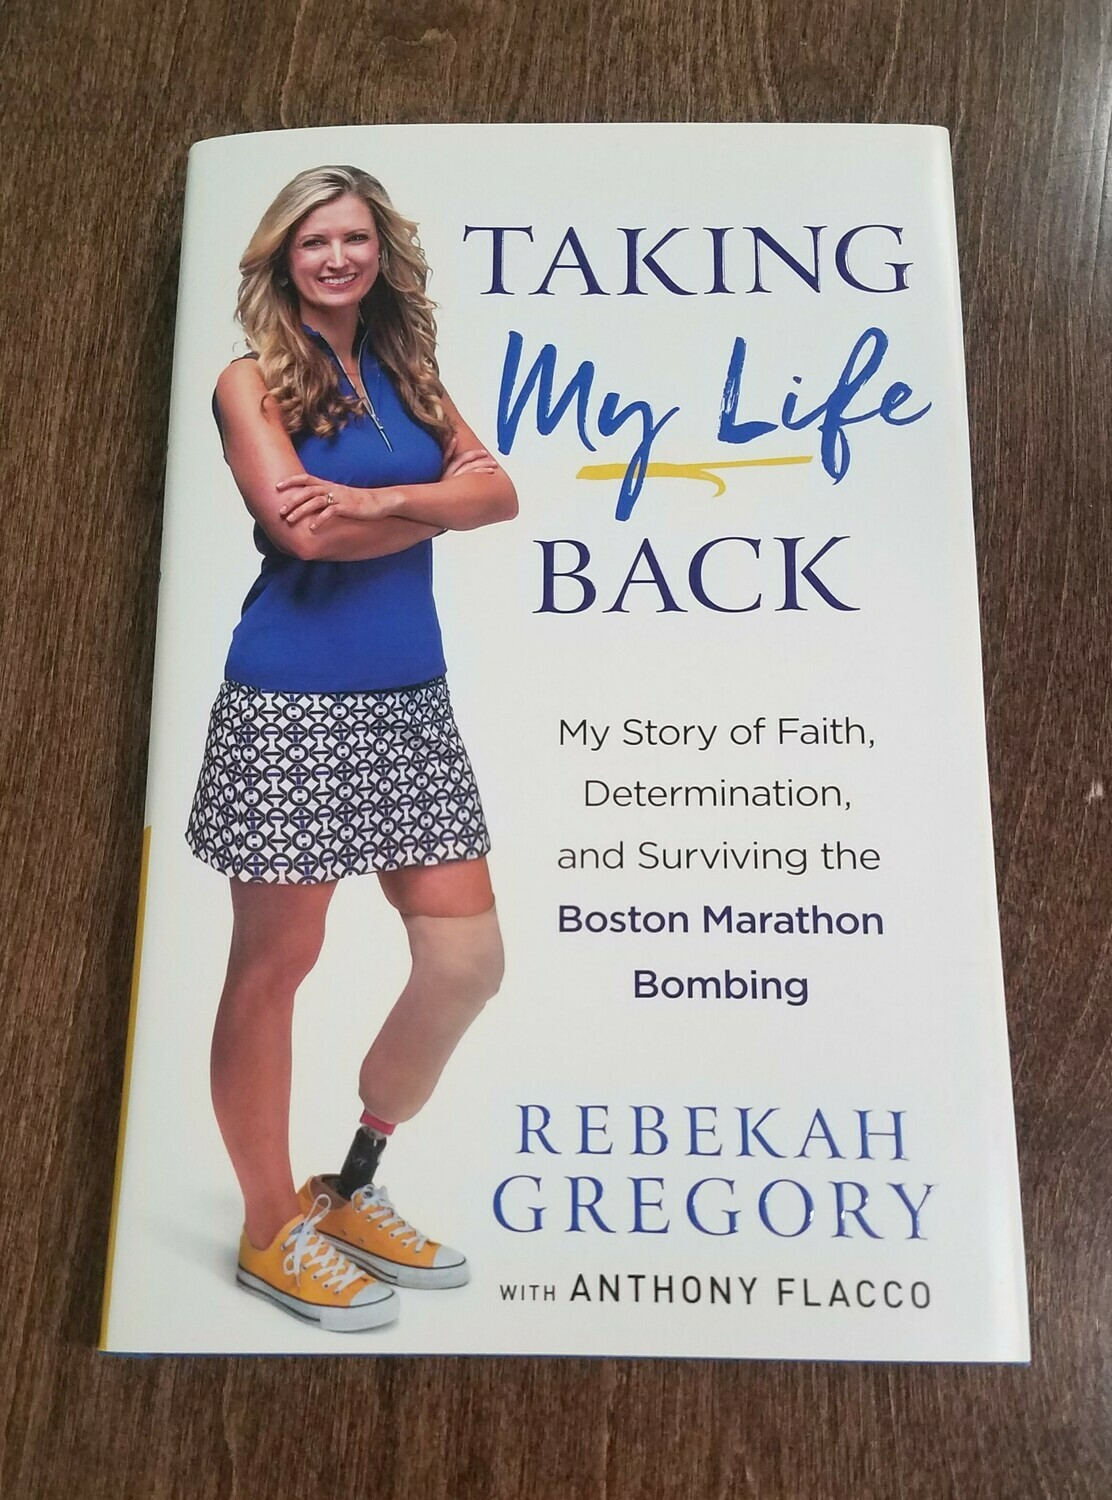 Taking my Life Back by Rebekah Gregory